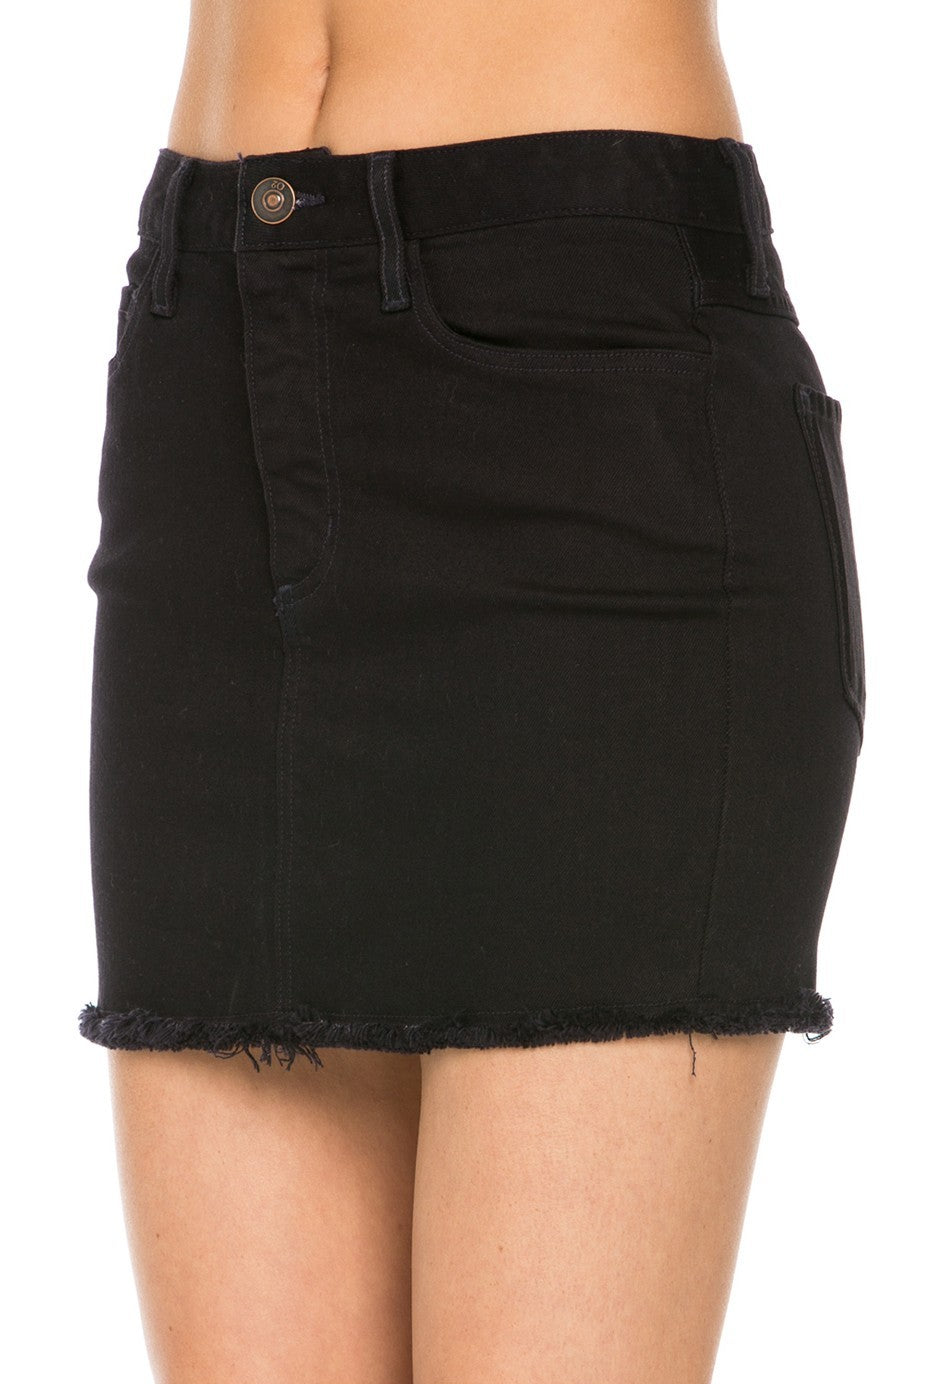 Hold Me Tight High Waisted Black Skirt